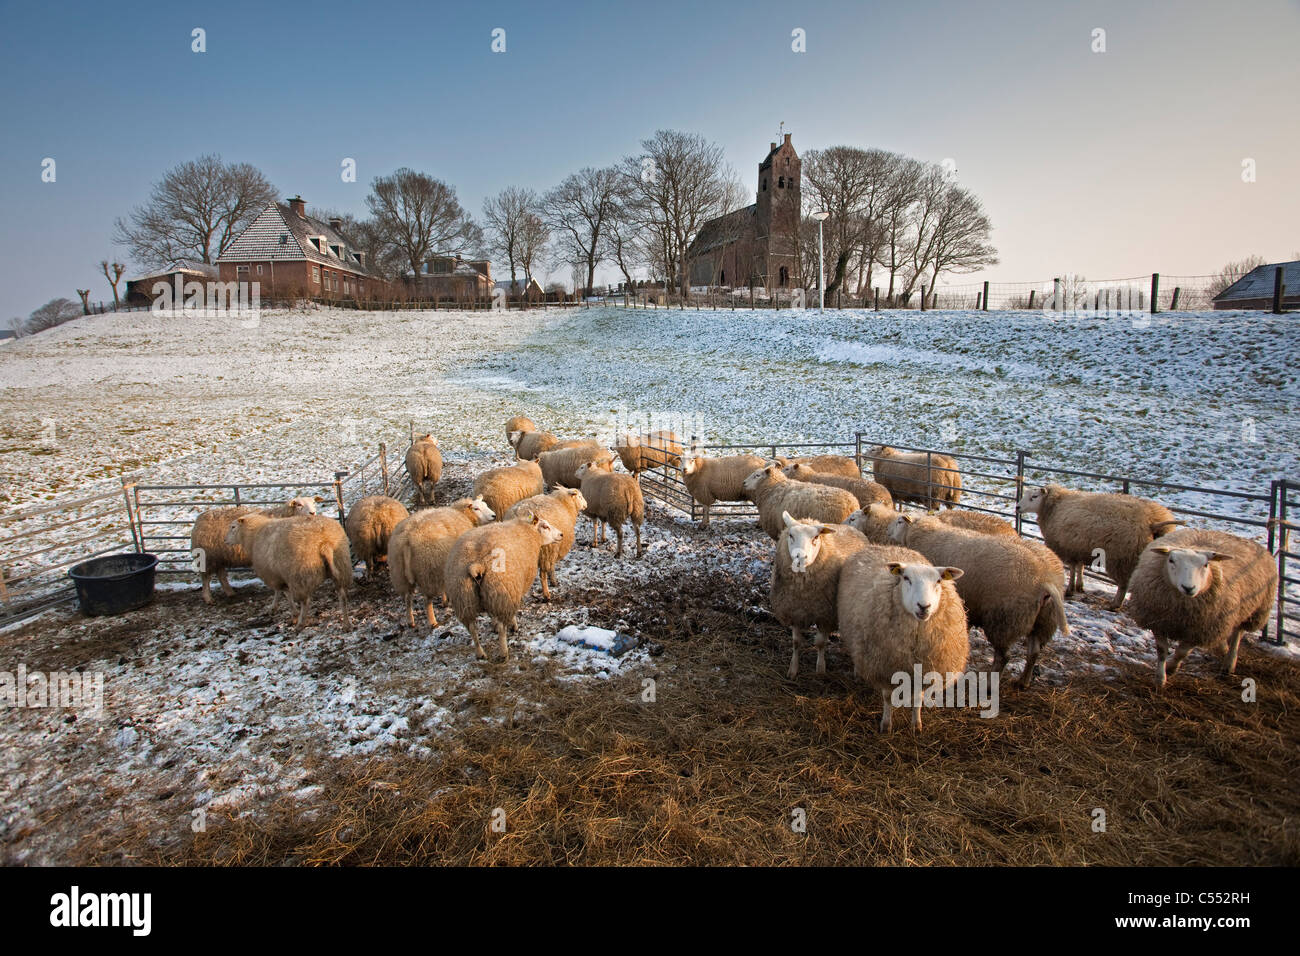 The Netherlands, Hogebeintum, Church on mound and sheep  in snow. - Stock Image